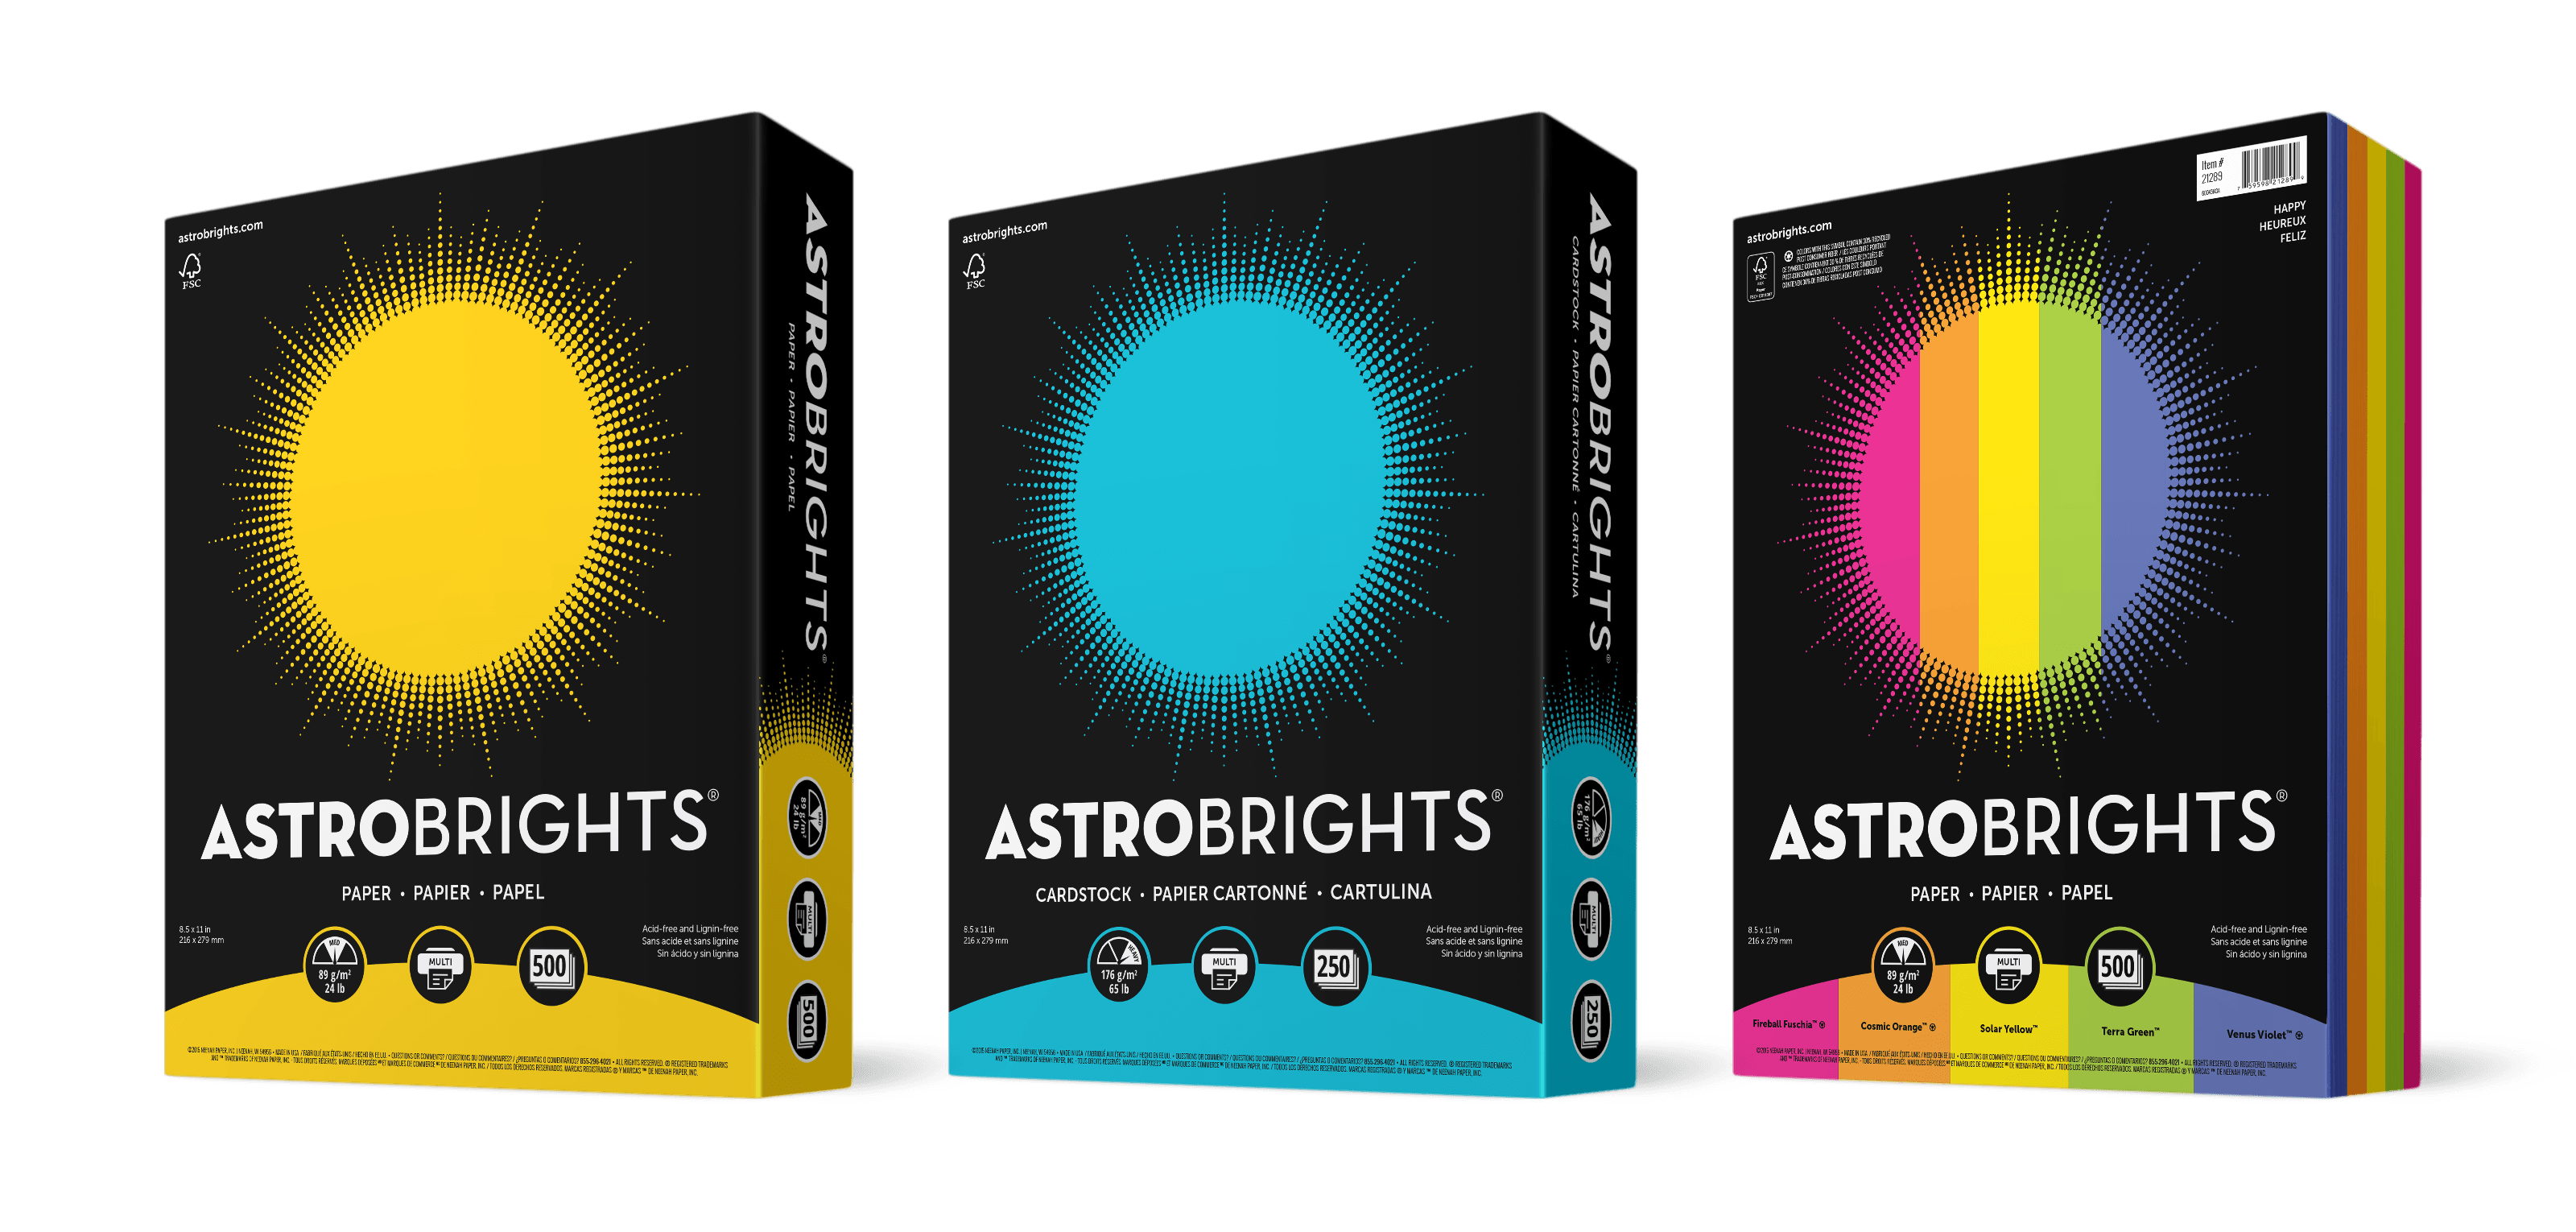 astrobright paper Paper and card stocks are the carriers of the printed word paper & cardstock - astrobrights paper | astrobrights envelopes astrobrights paper & envelopes.